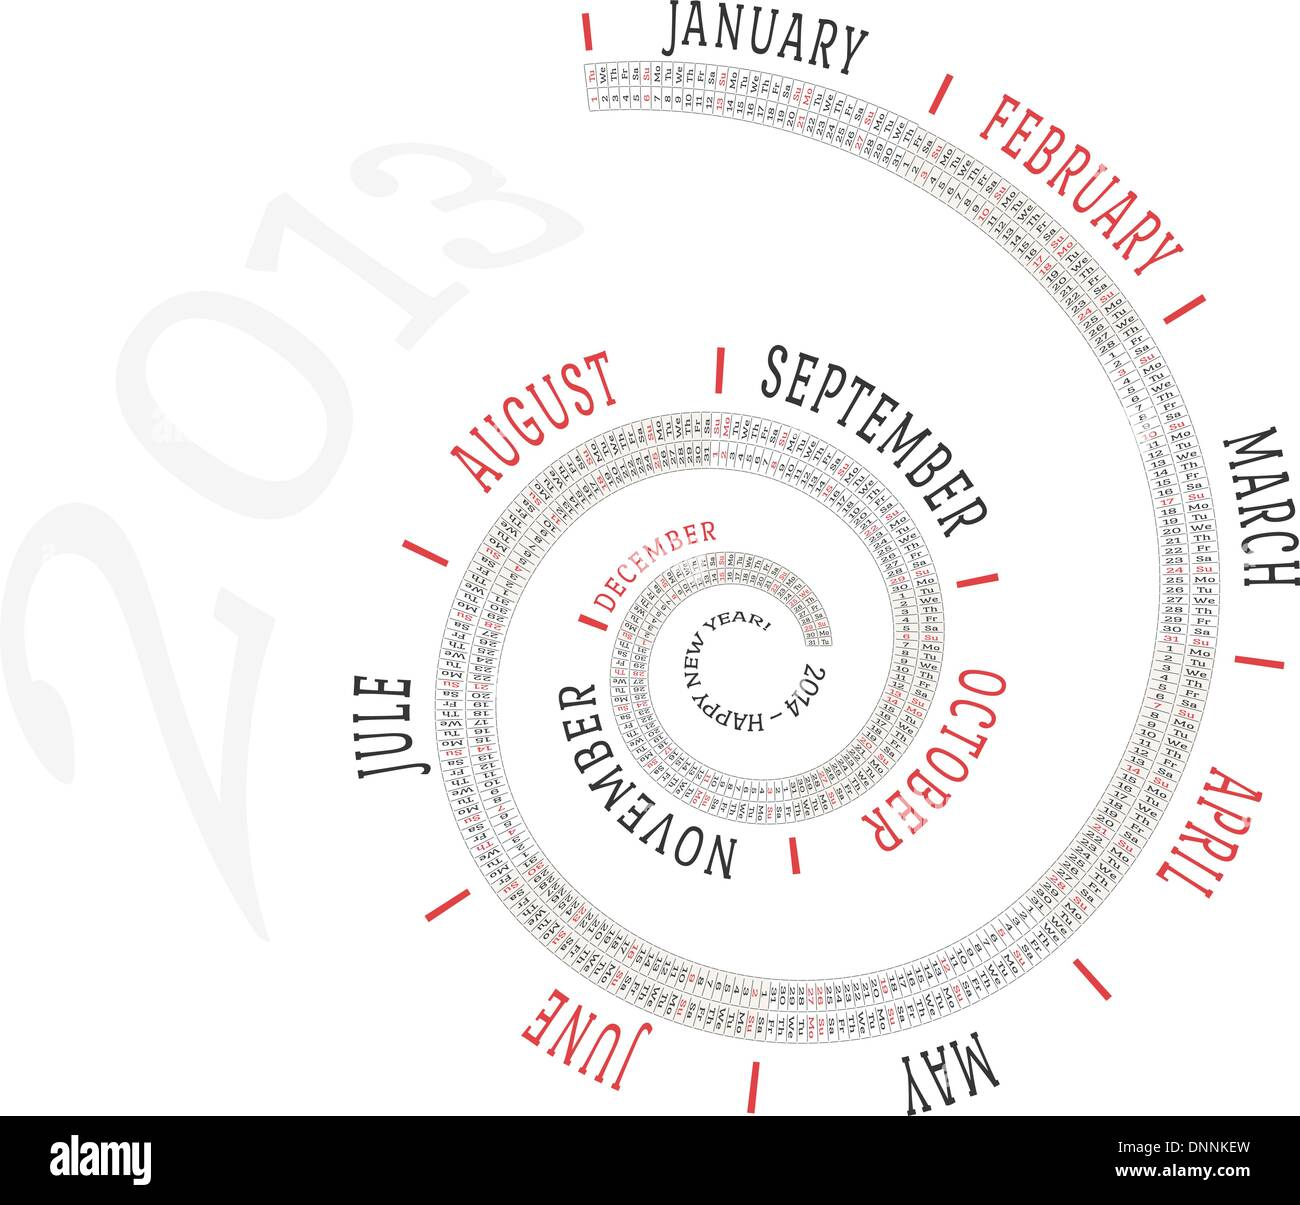 2013 calendar in spiral form with the names of days of the week and